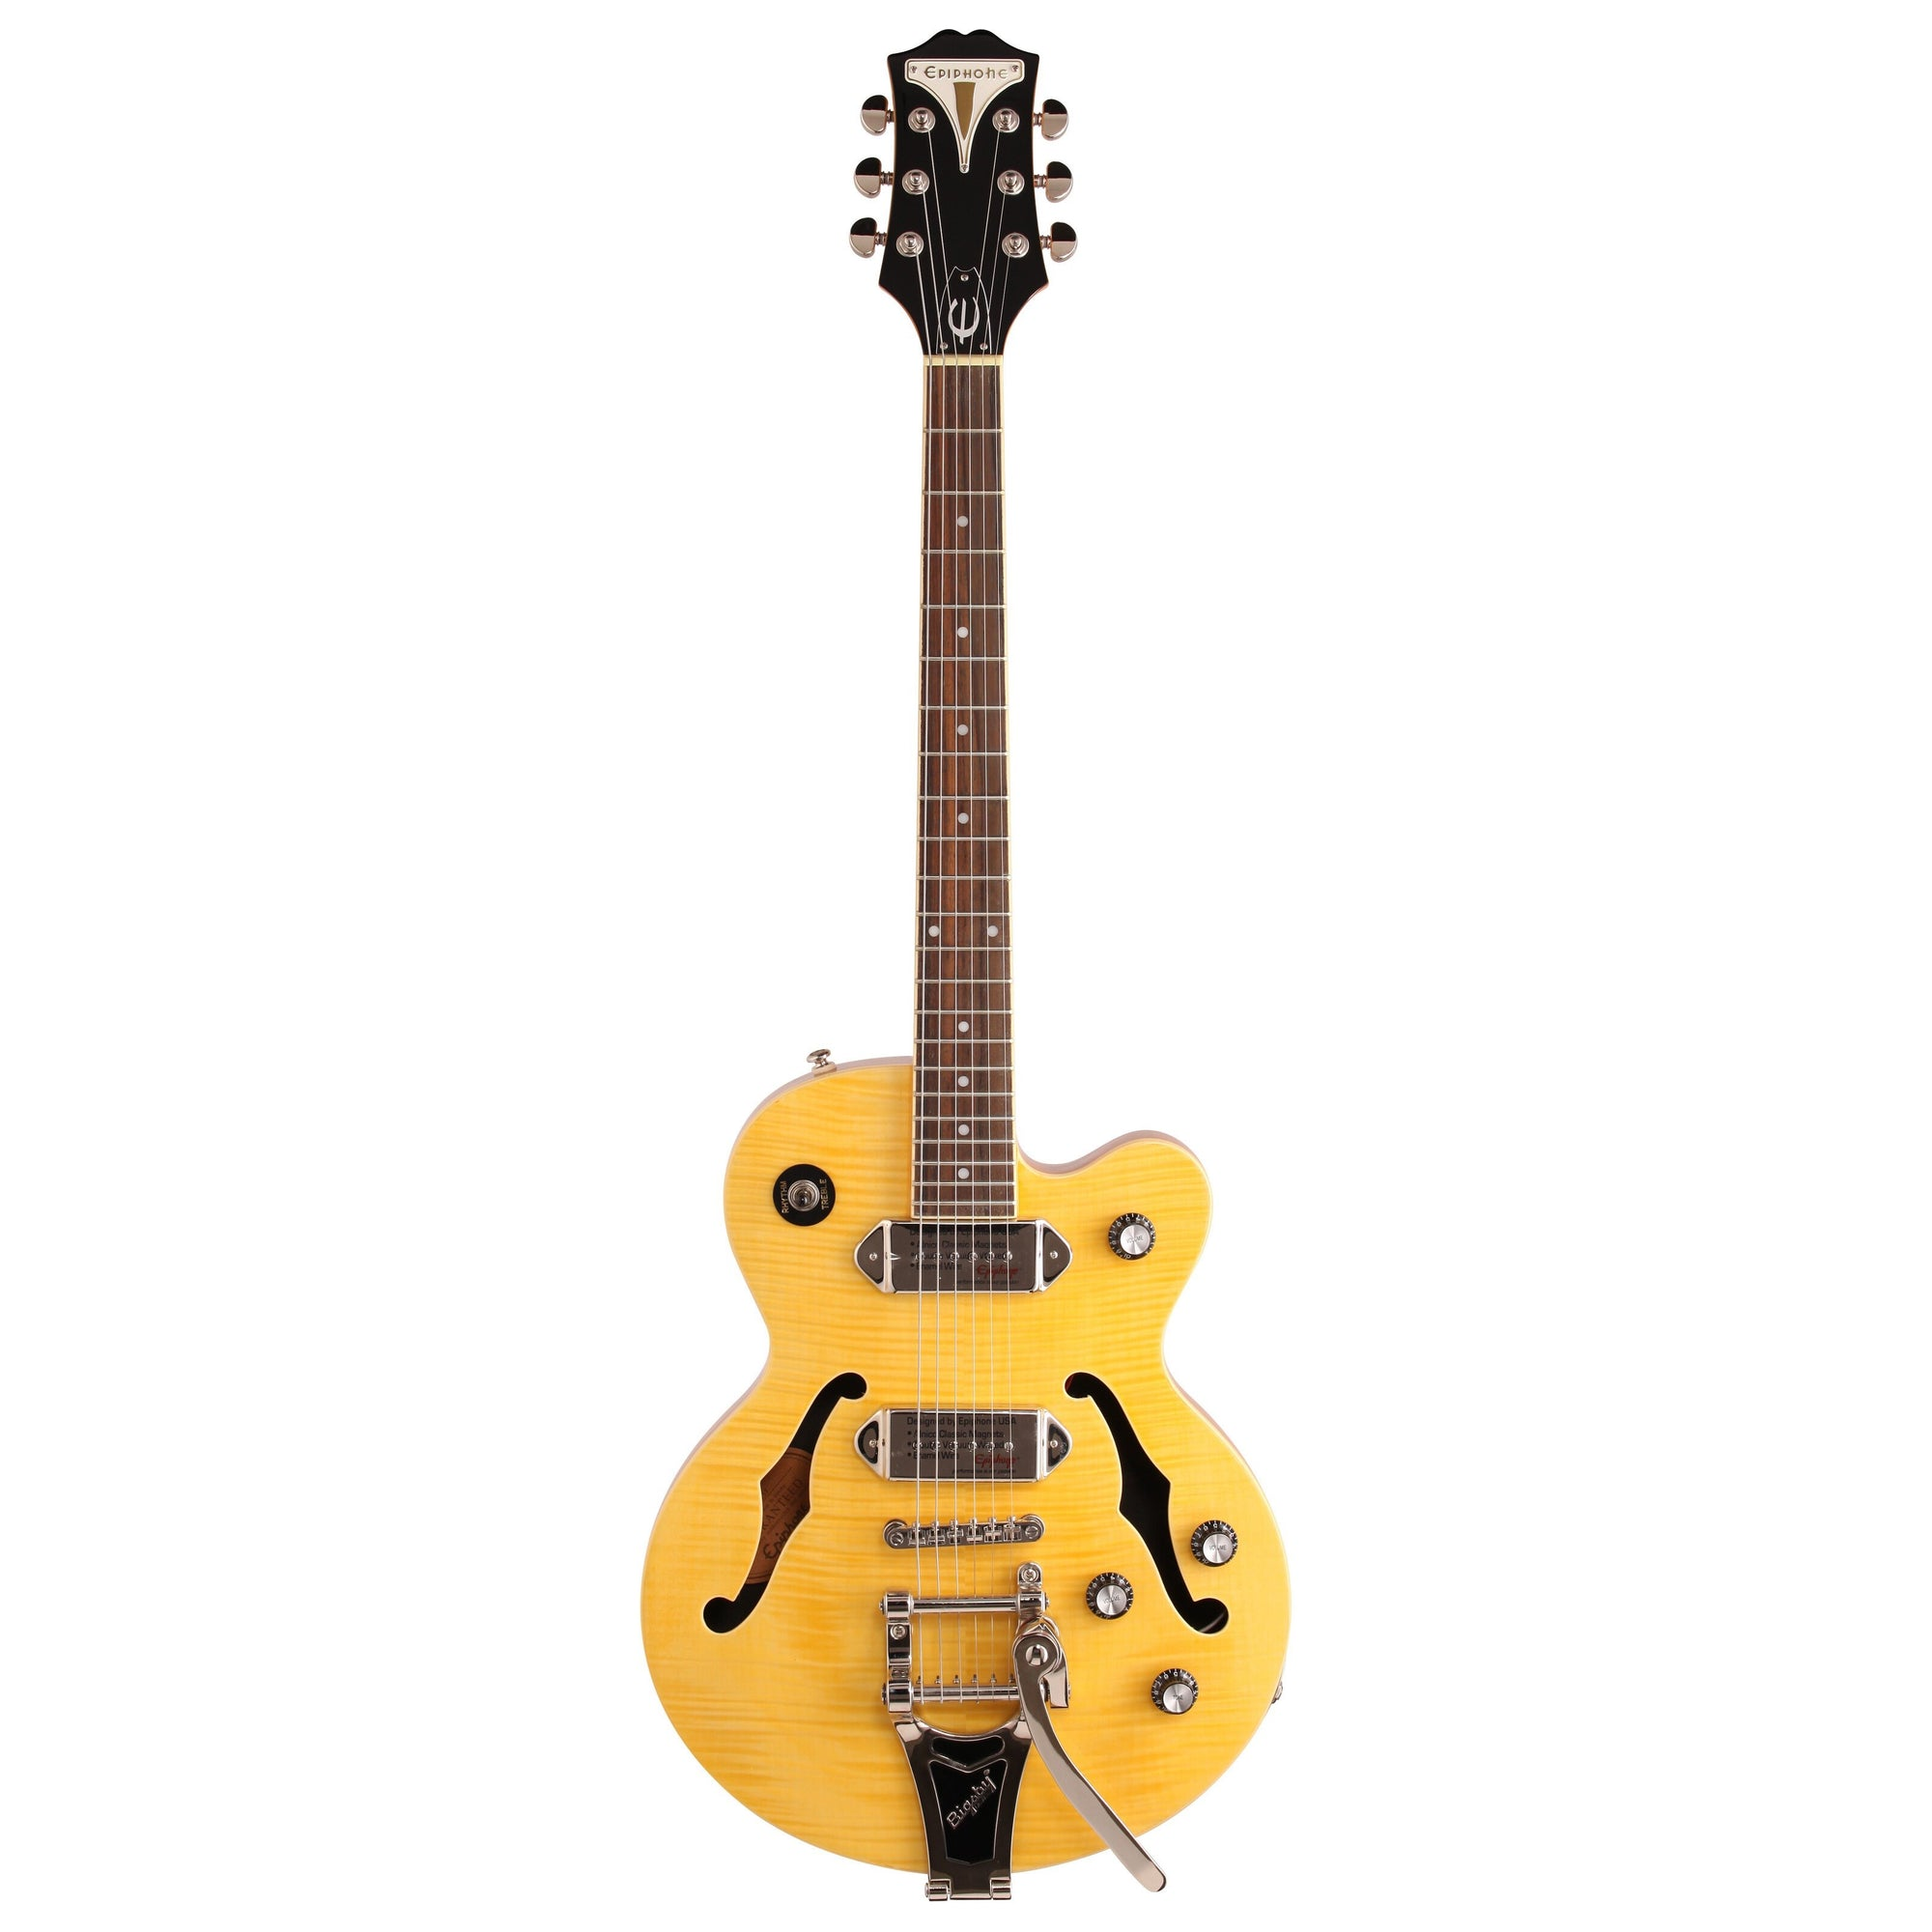 Epiphone Wildkat Electric Guitar with Bigsby Tremolo, Antique Natural